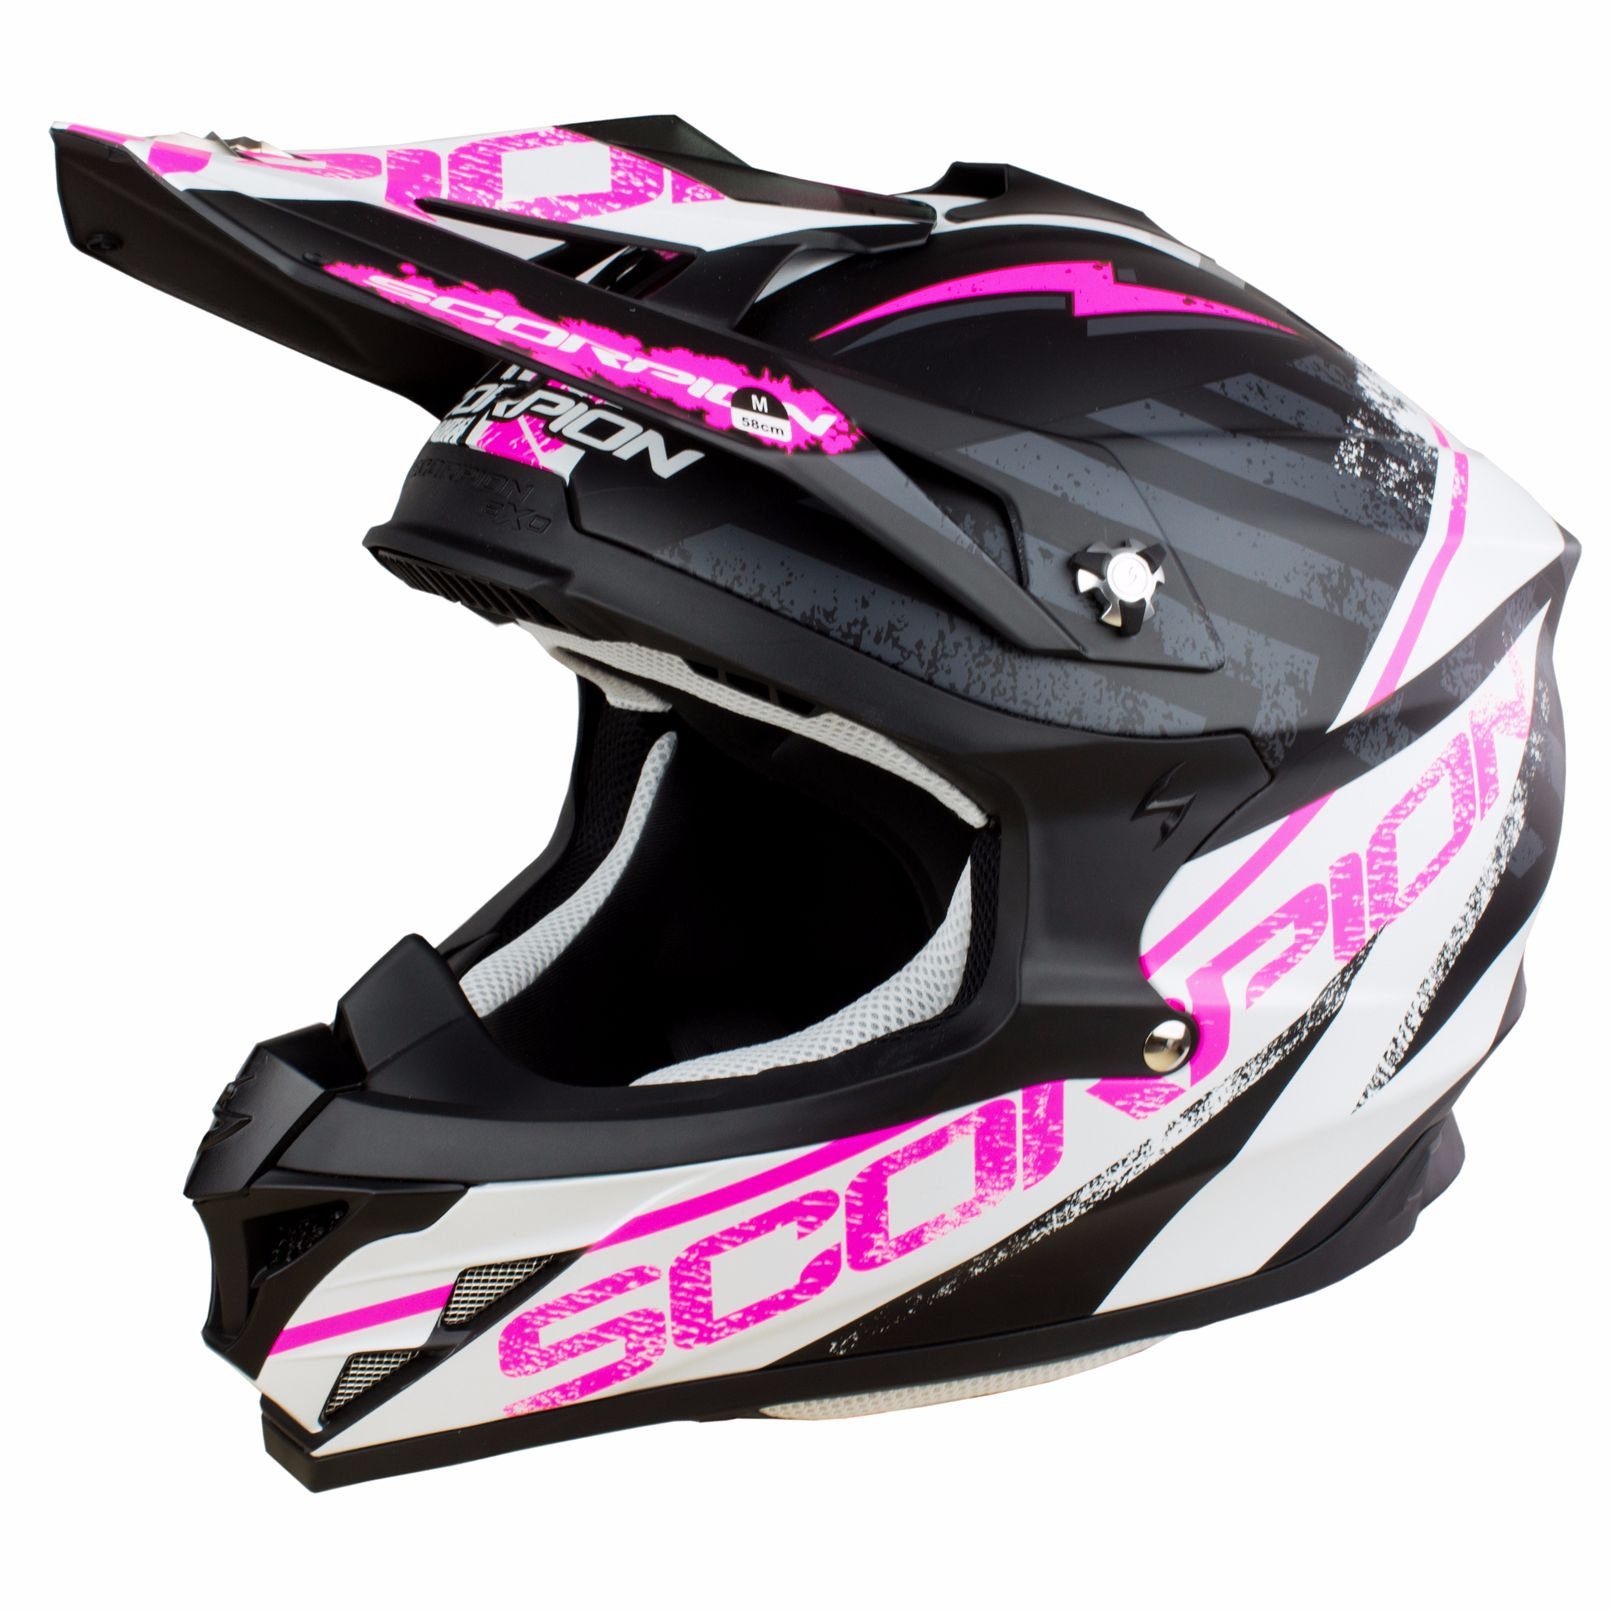 Casque Cross Scorpion Exo Vx-15 Evo Air - Gamma Noir Blanc Rose